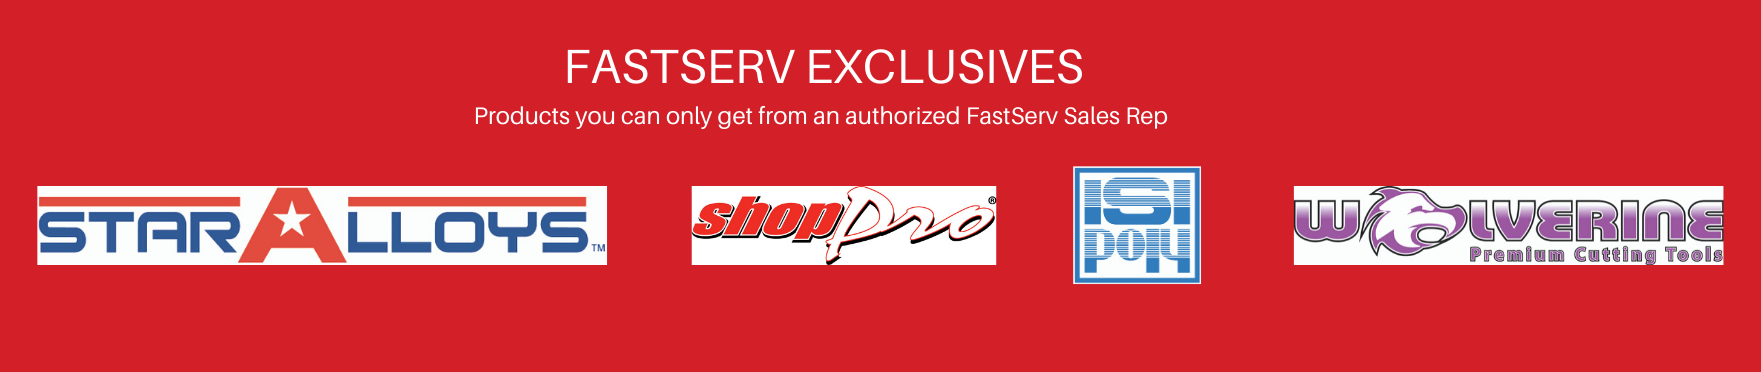 fastserv exclusives